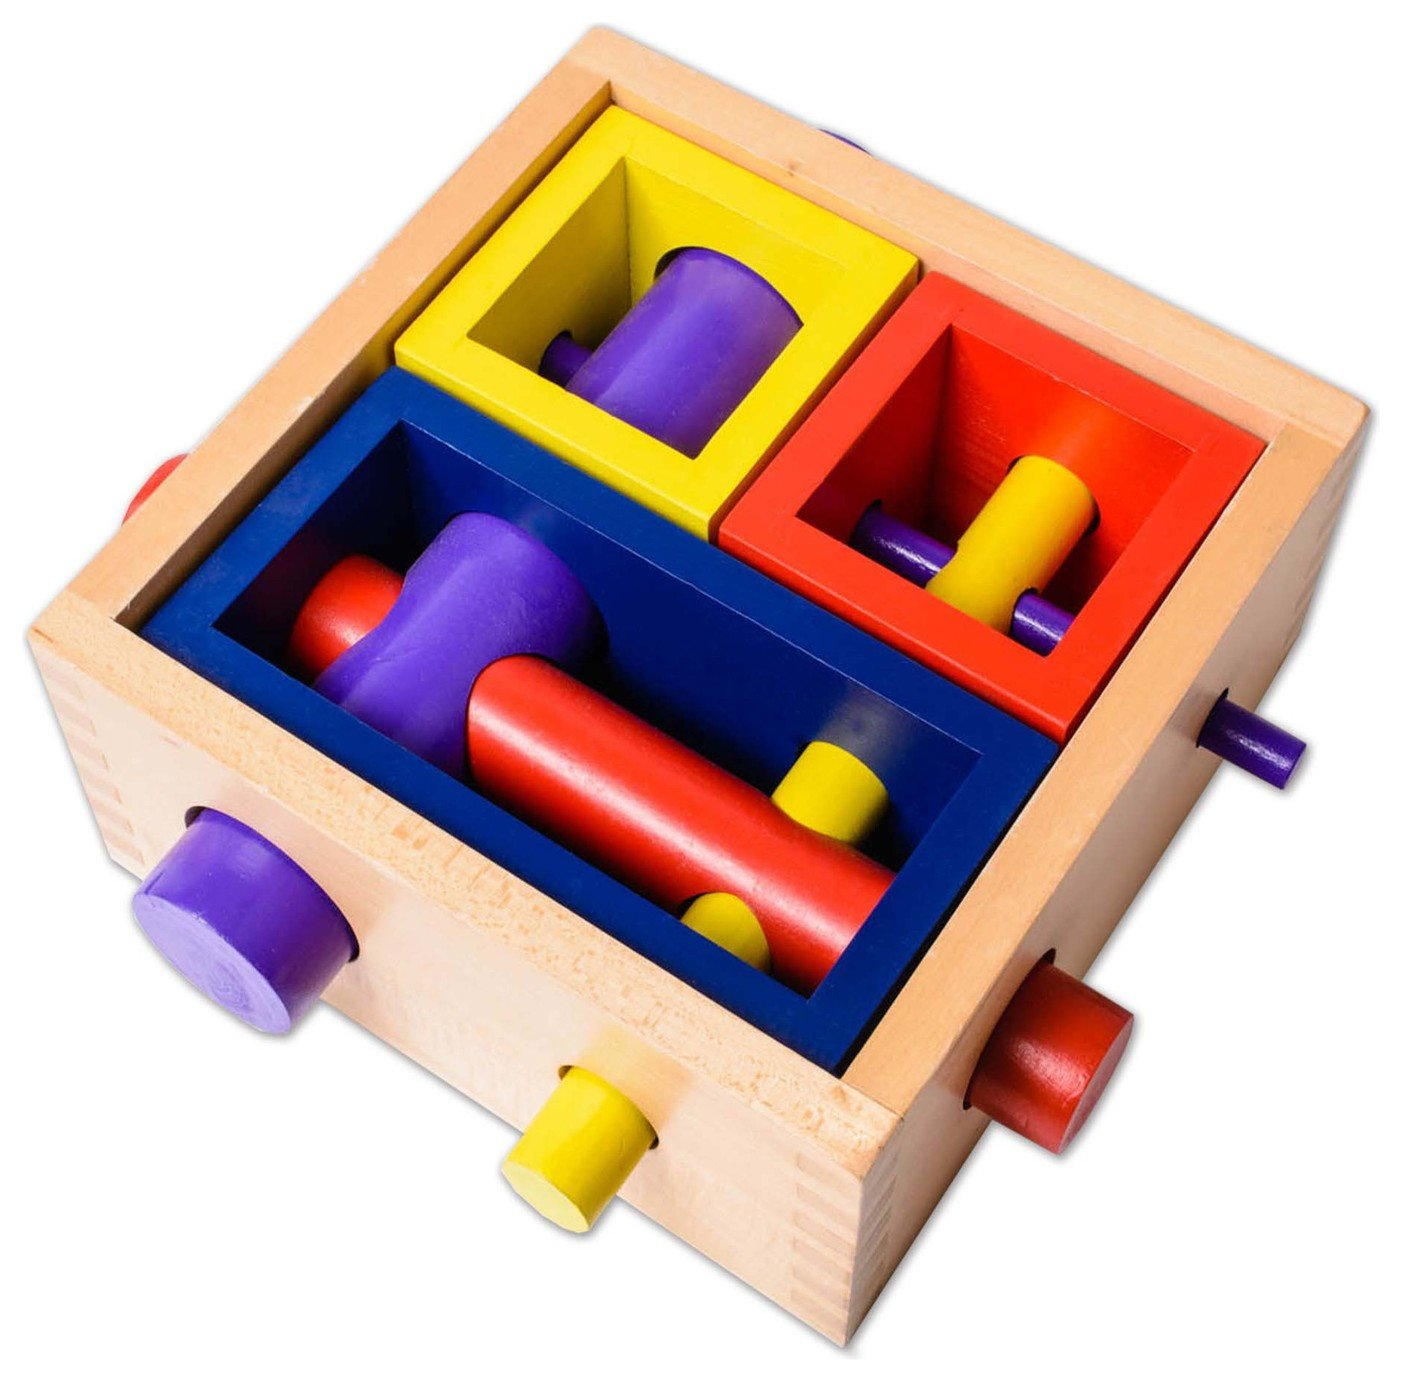 Image of EDUK8 Wooden Toy Puzzle Box